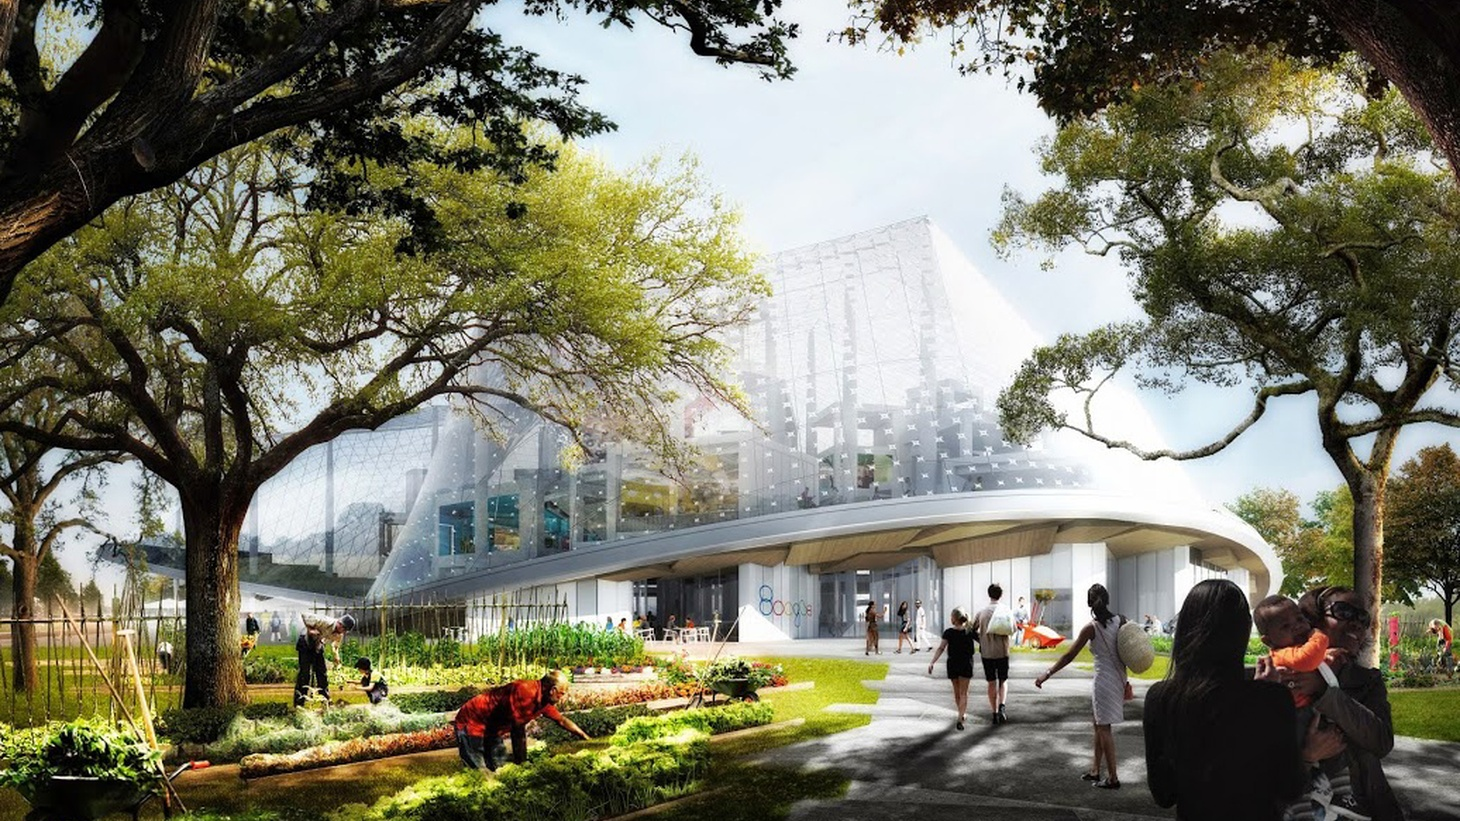 Google has jumped on the showpiece architecture bandwagon with a proposed new building in Mountain View. And a local designer gets a taste of cut-throat reality TV.